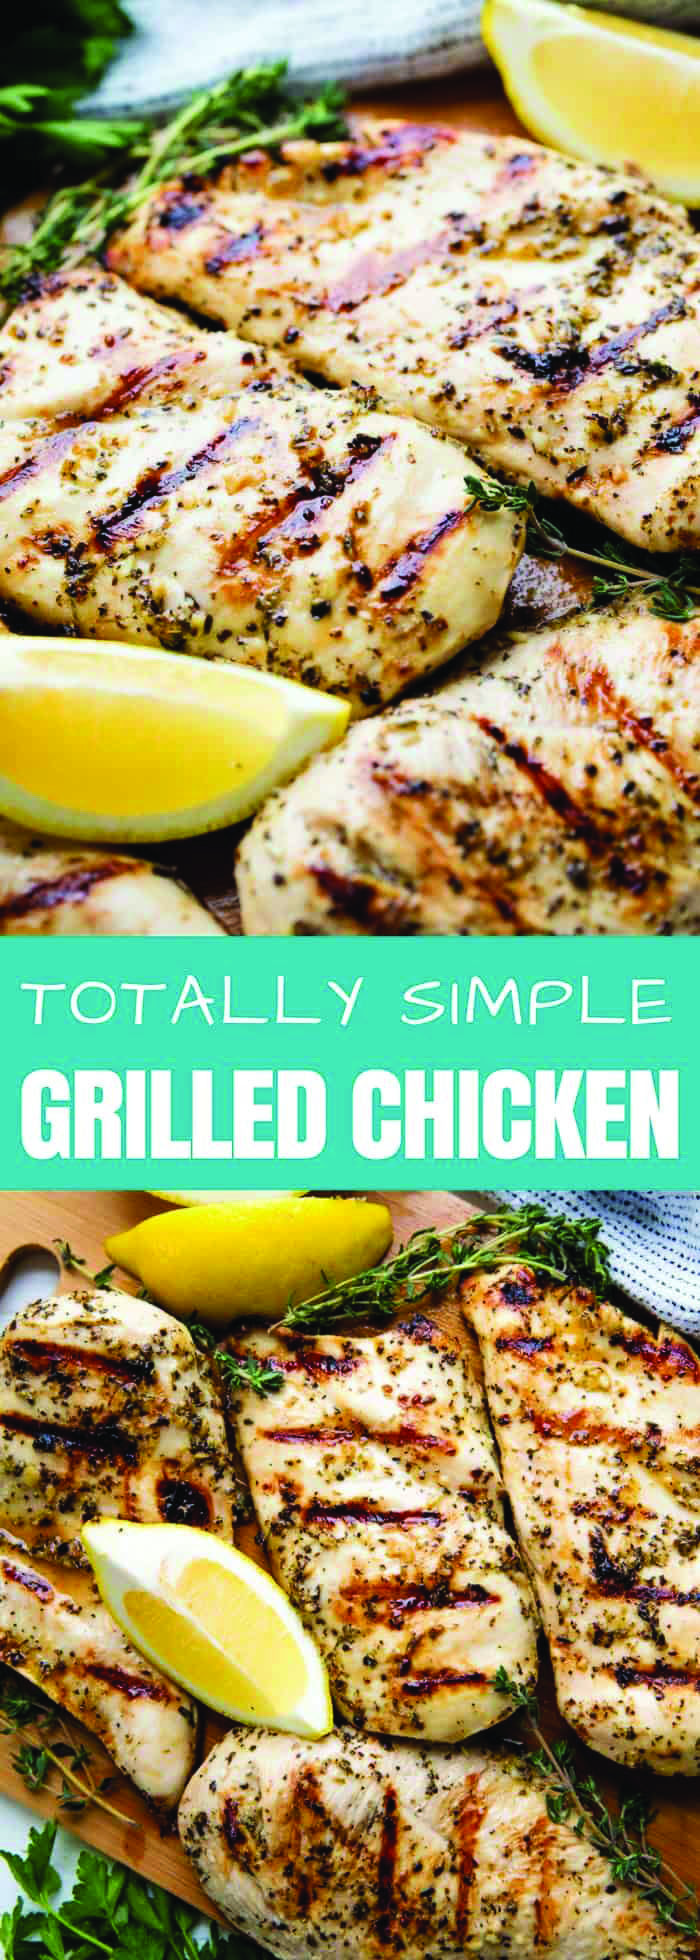 Gorgeous Grilled Chicken Recipes Pdf Just On Food Factory Zone Recipes Ideas Recipespdf Grilled Chicken Recipes Easy Chicken Recipes Healthy Chicken Recipes